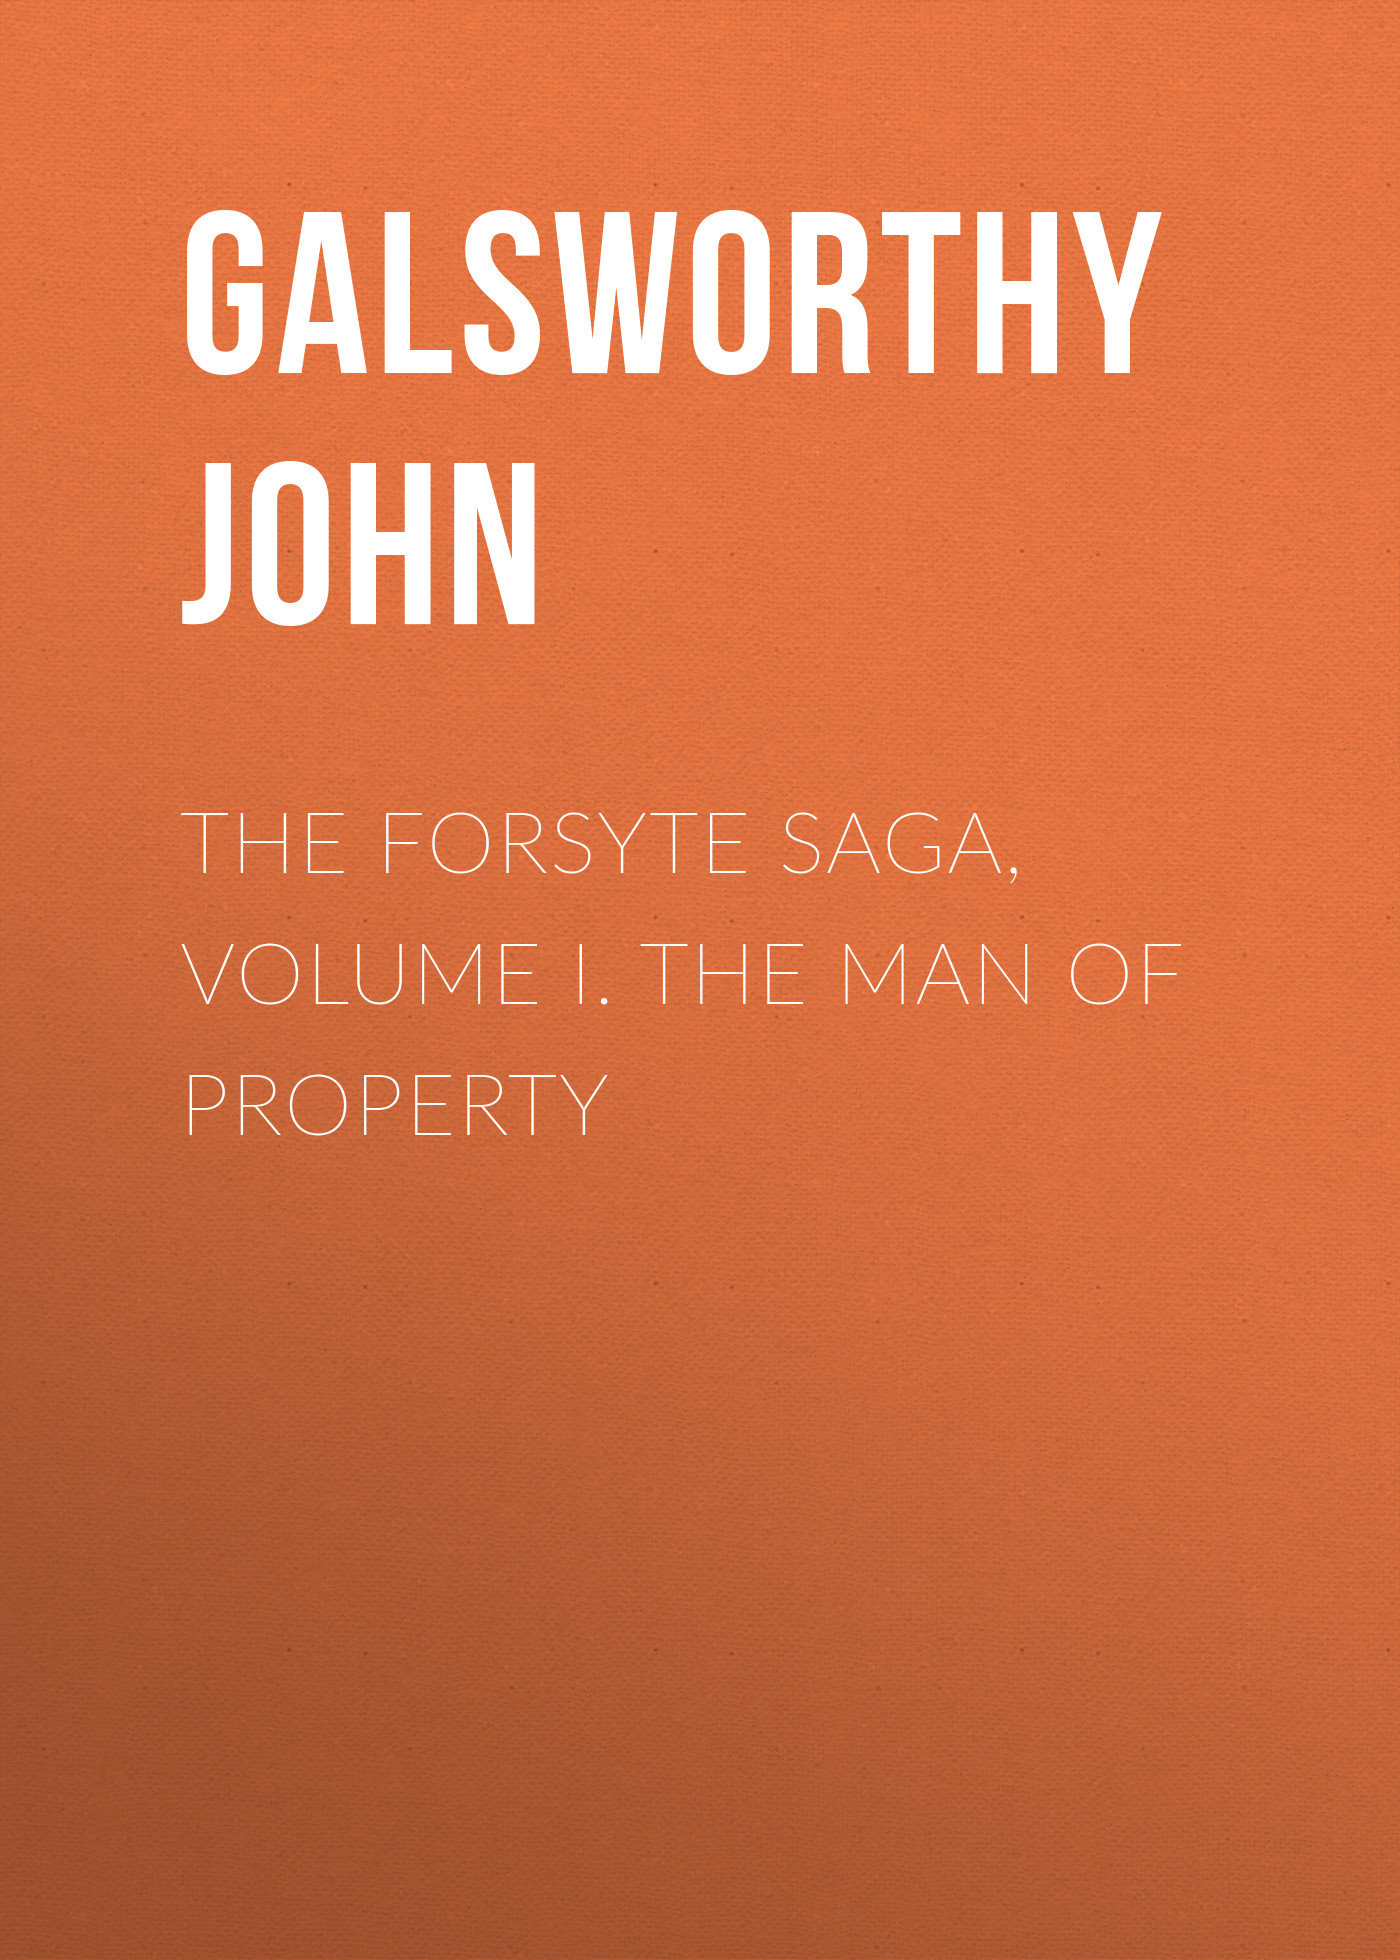 Galsworthy John The Forsyte Saga, Volume I. The Man Of Property the forsyte saga